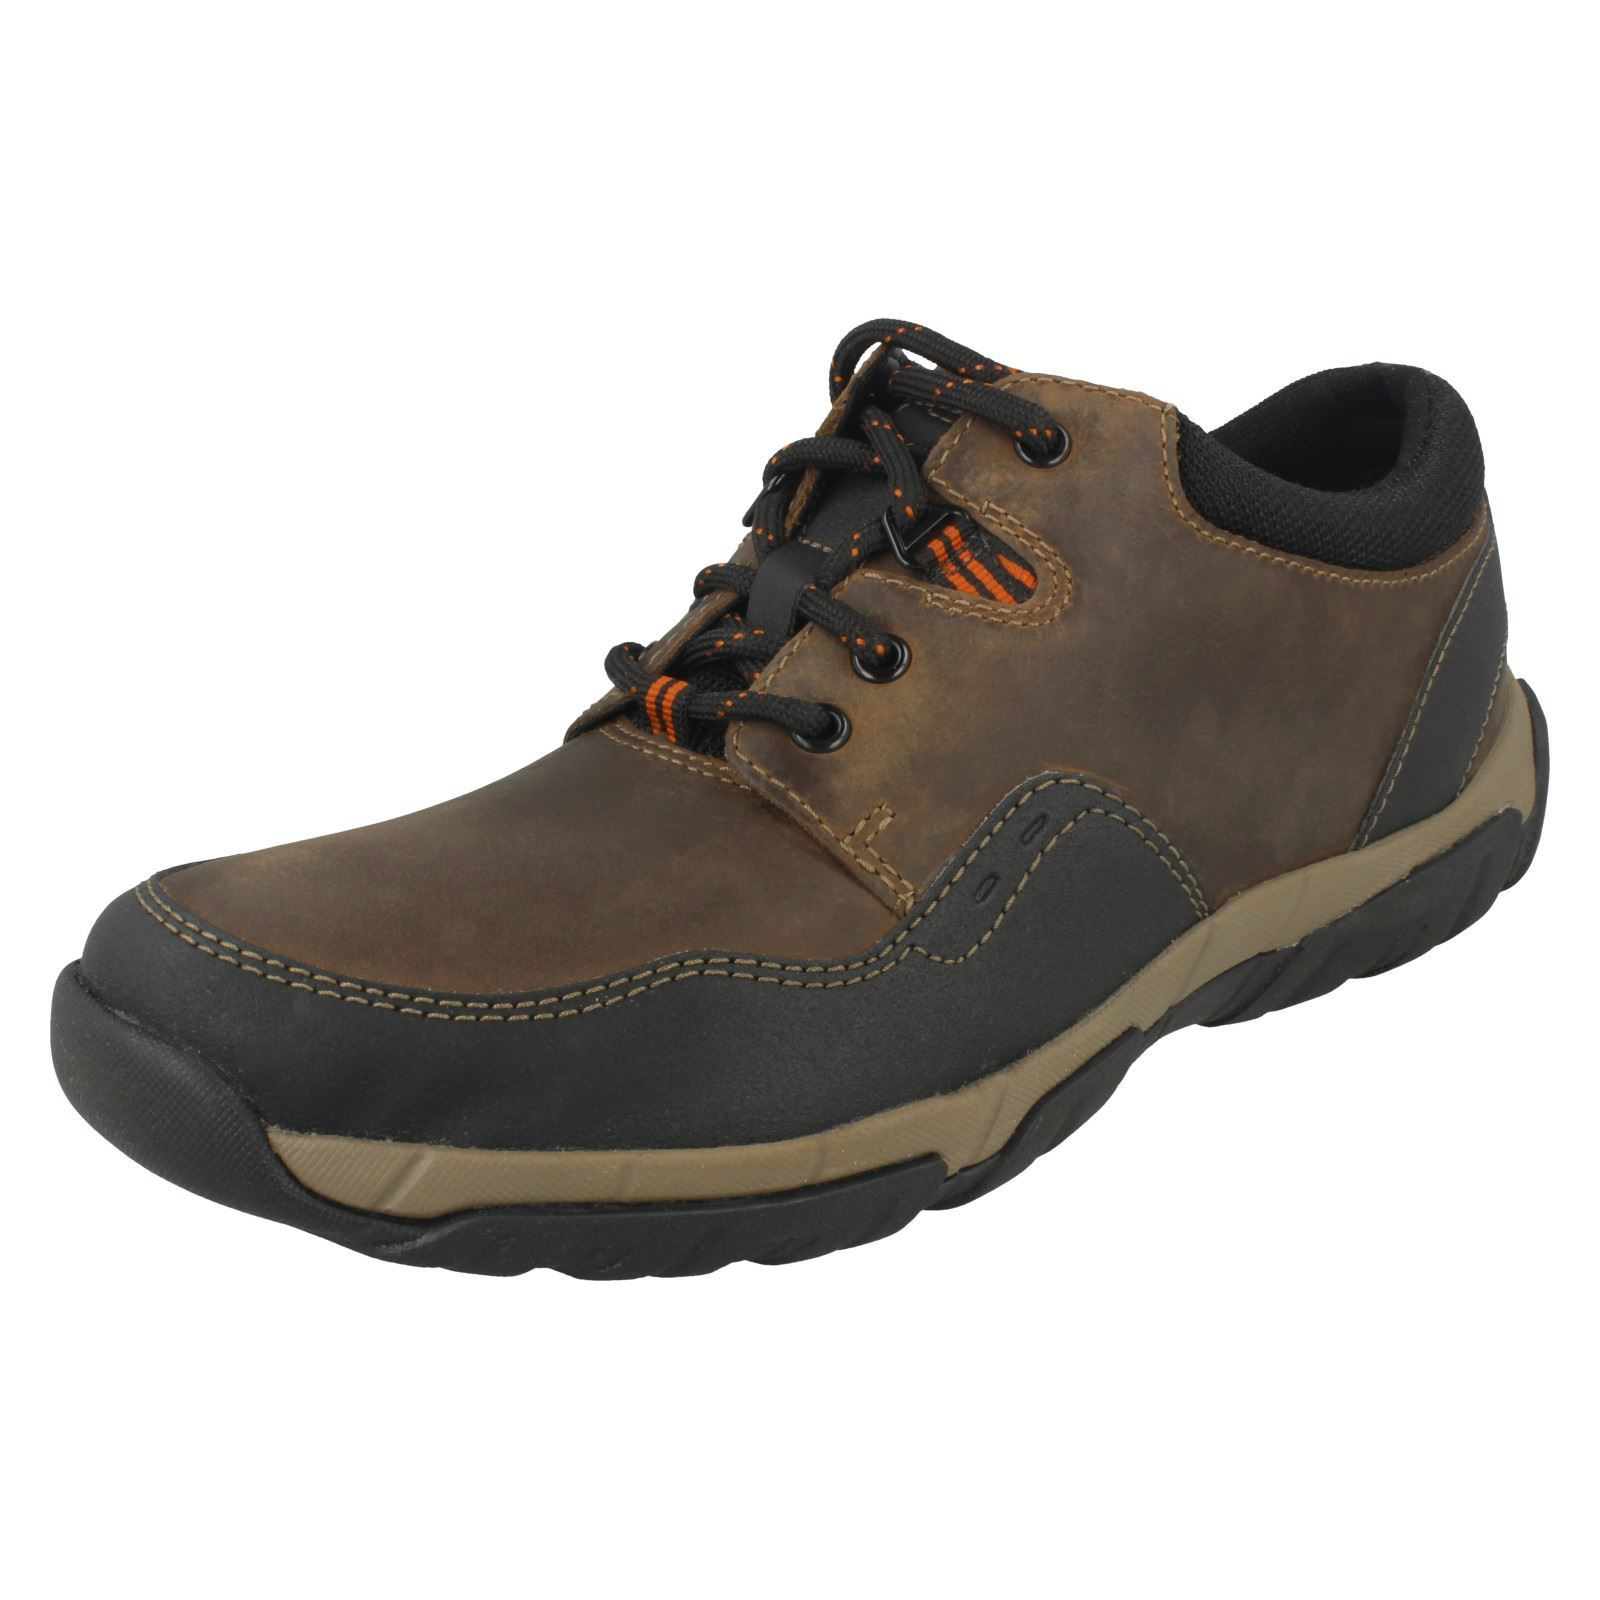 Details Ii Clarks Up Mens Shoes Lace Casual Weatherproof Textile About Walbeck Edge Leatheramp; SMqpzLUVG